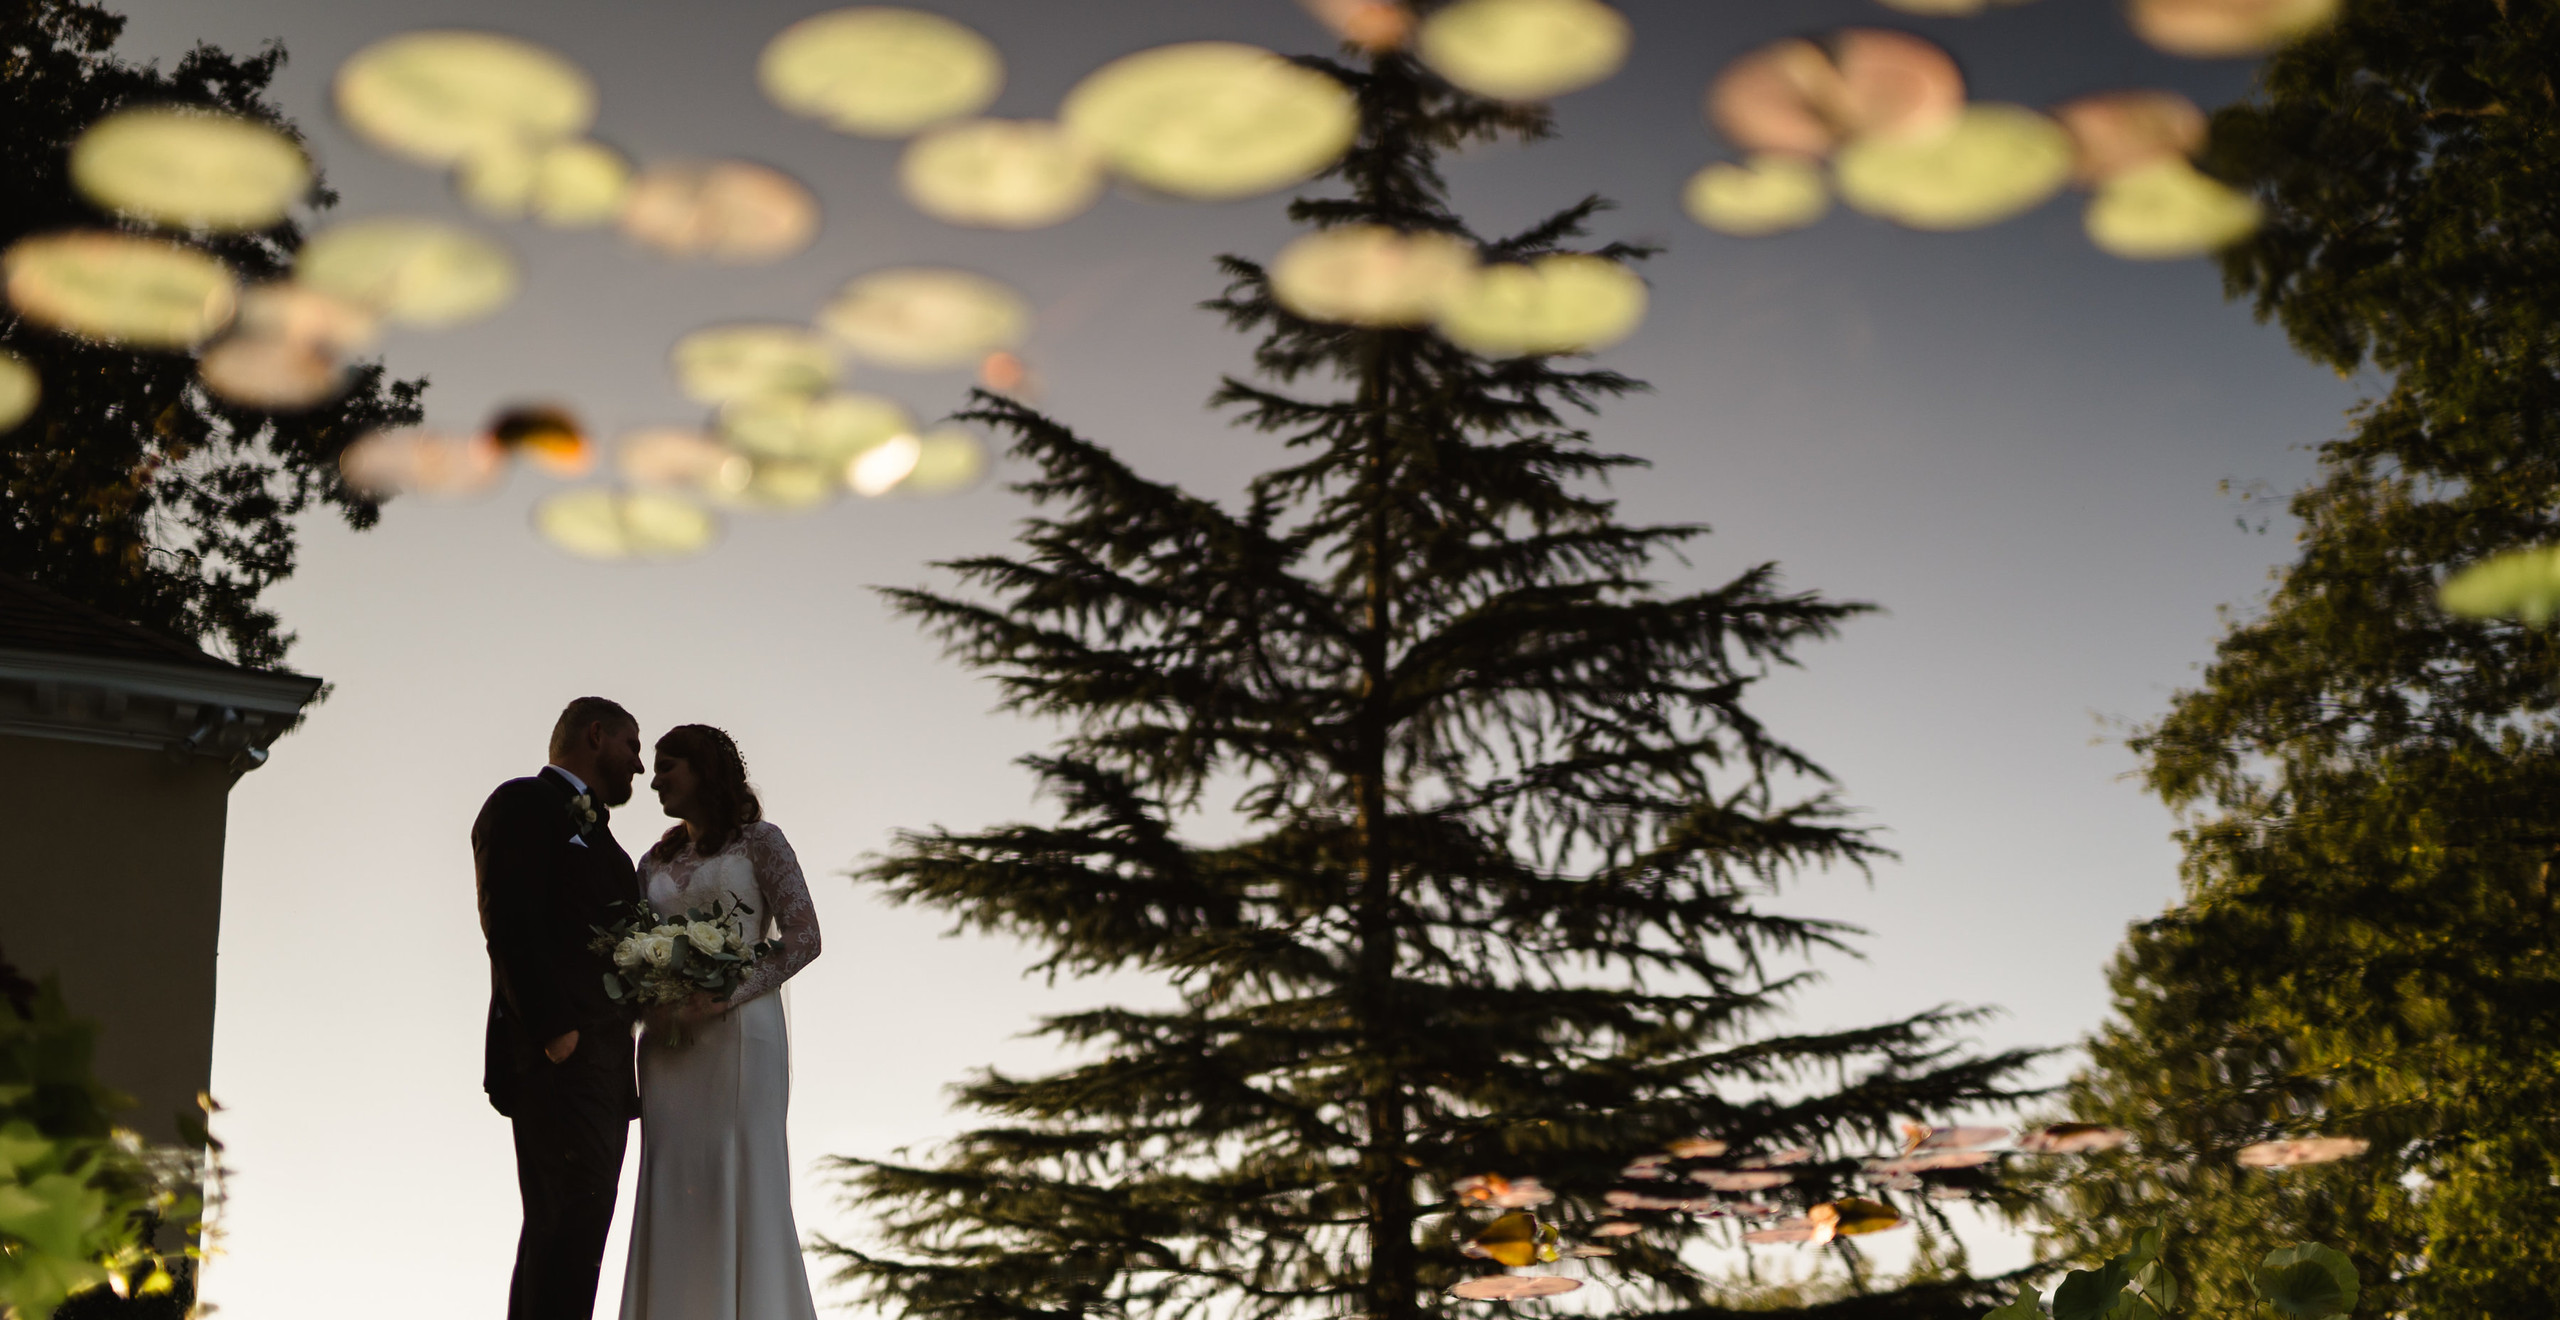 reflection in pond of bride and groom posing